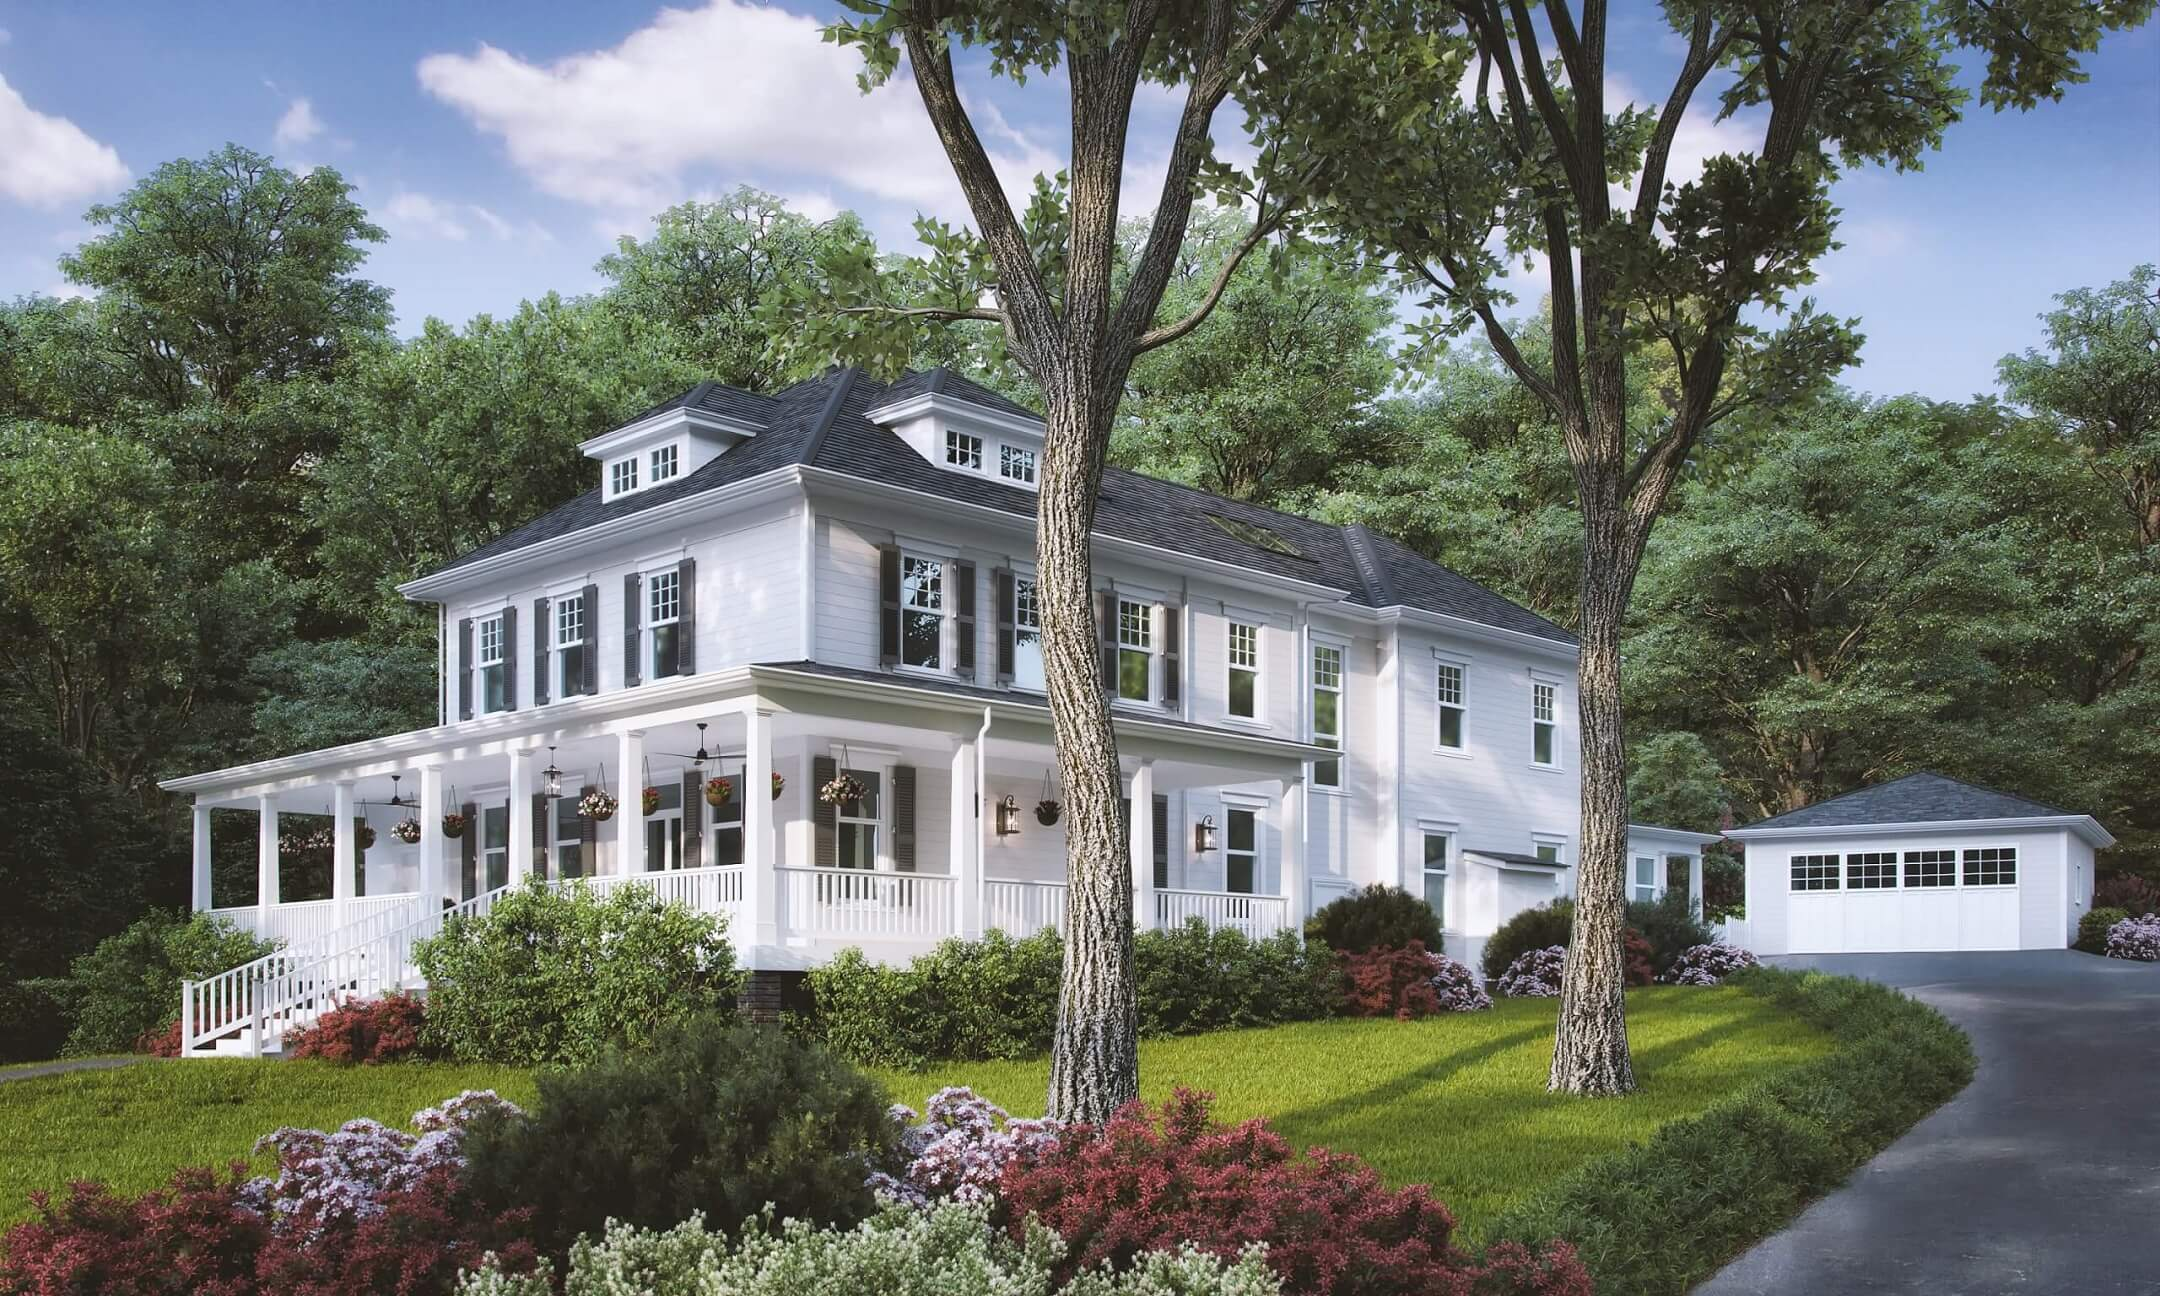 Architectural Visualization for a Family Residence